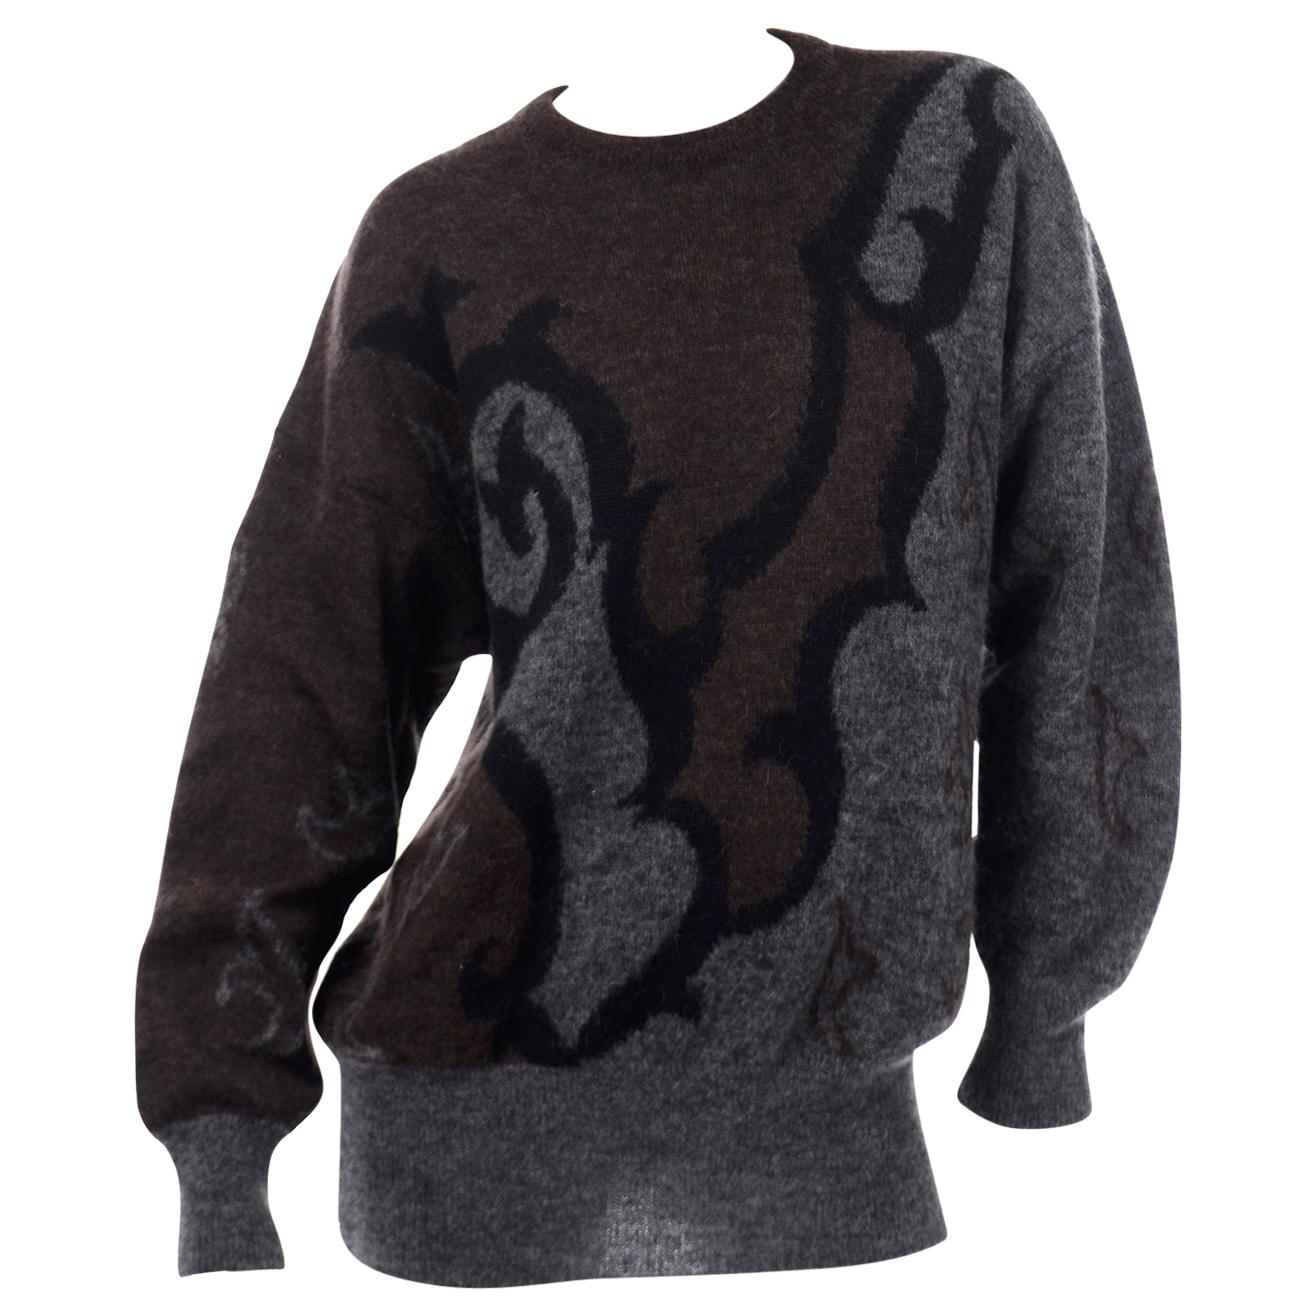 Vintage Escada Abstract Pullover Grey & Brown Sweater designed by Margaretha Ley